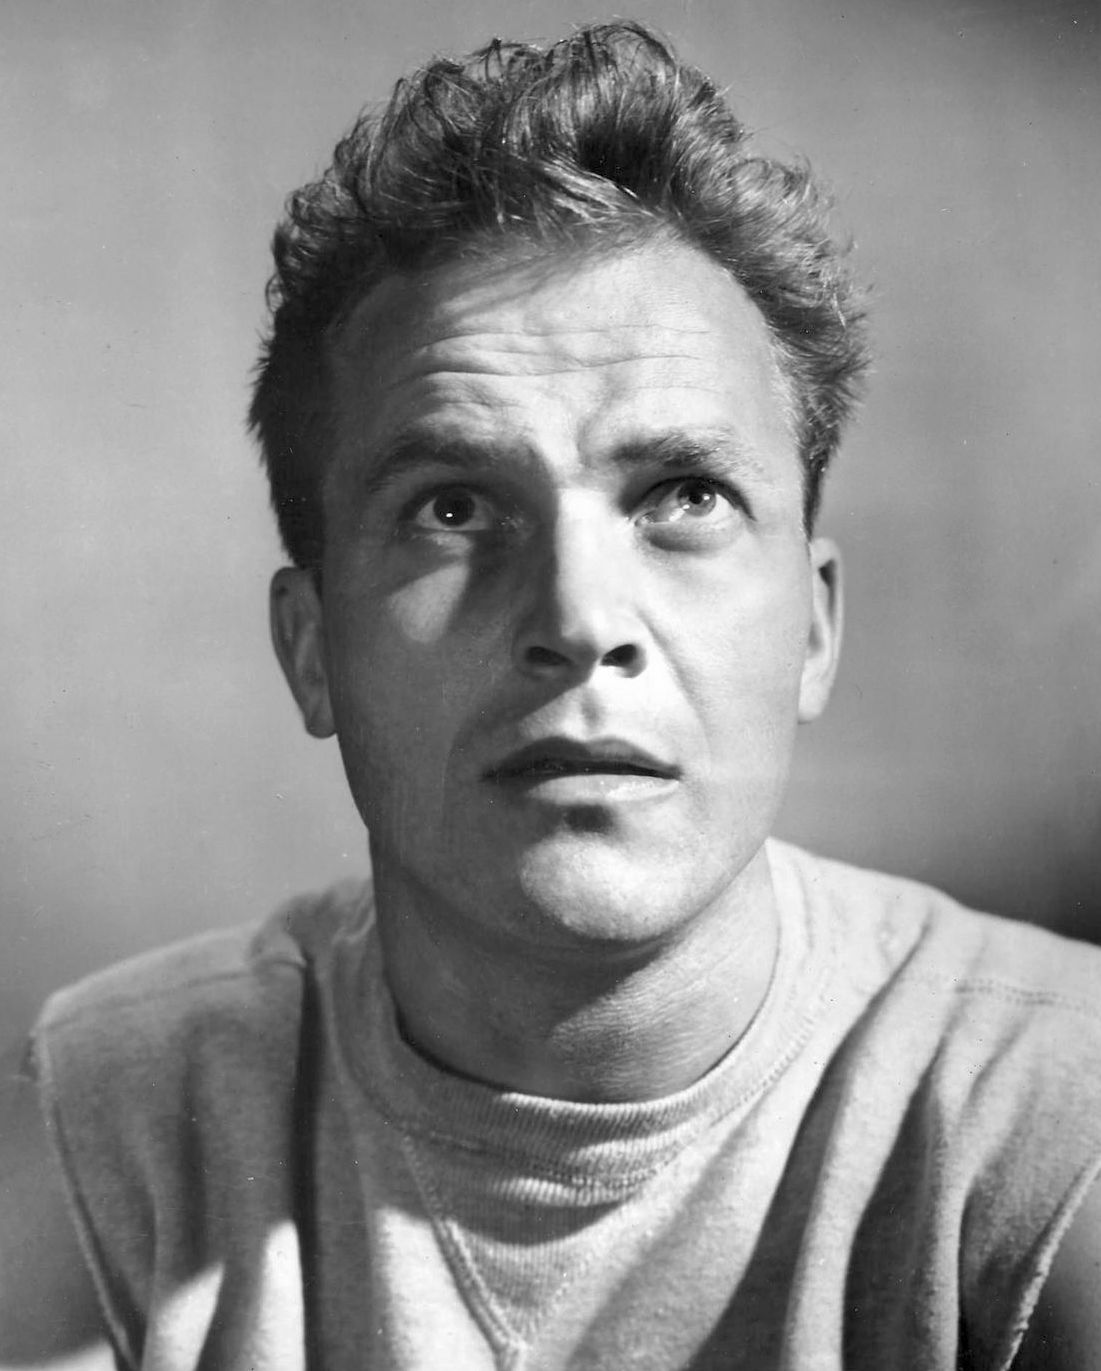 How tall is Ralph Meeker?